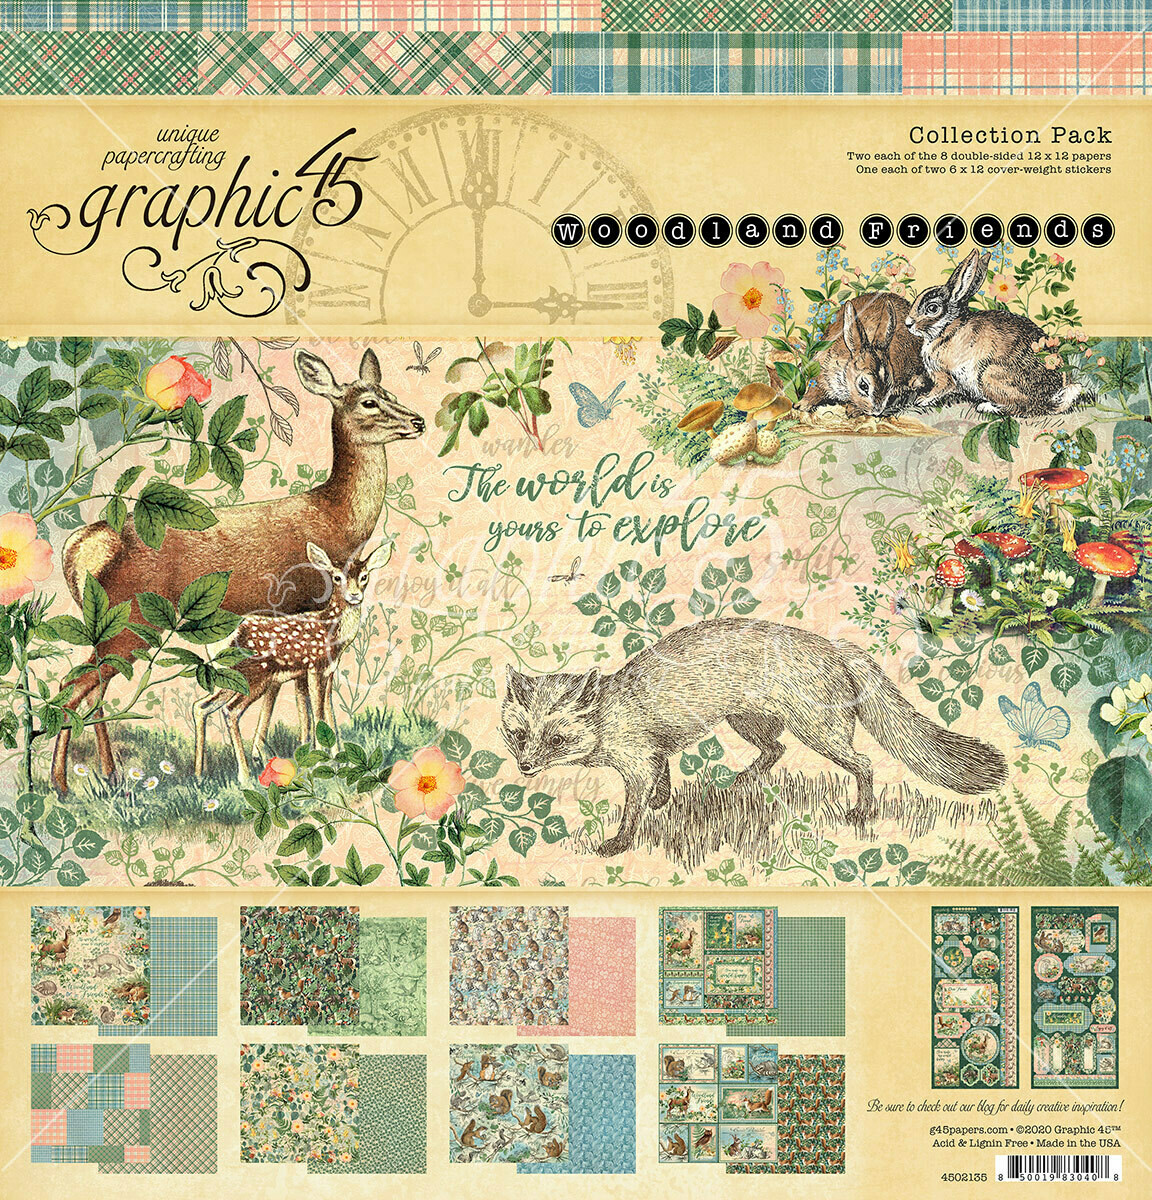 Woodland Friends 12x12 Collection Pack With Stickers - Graphic 45